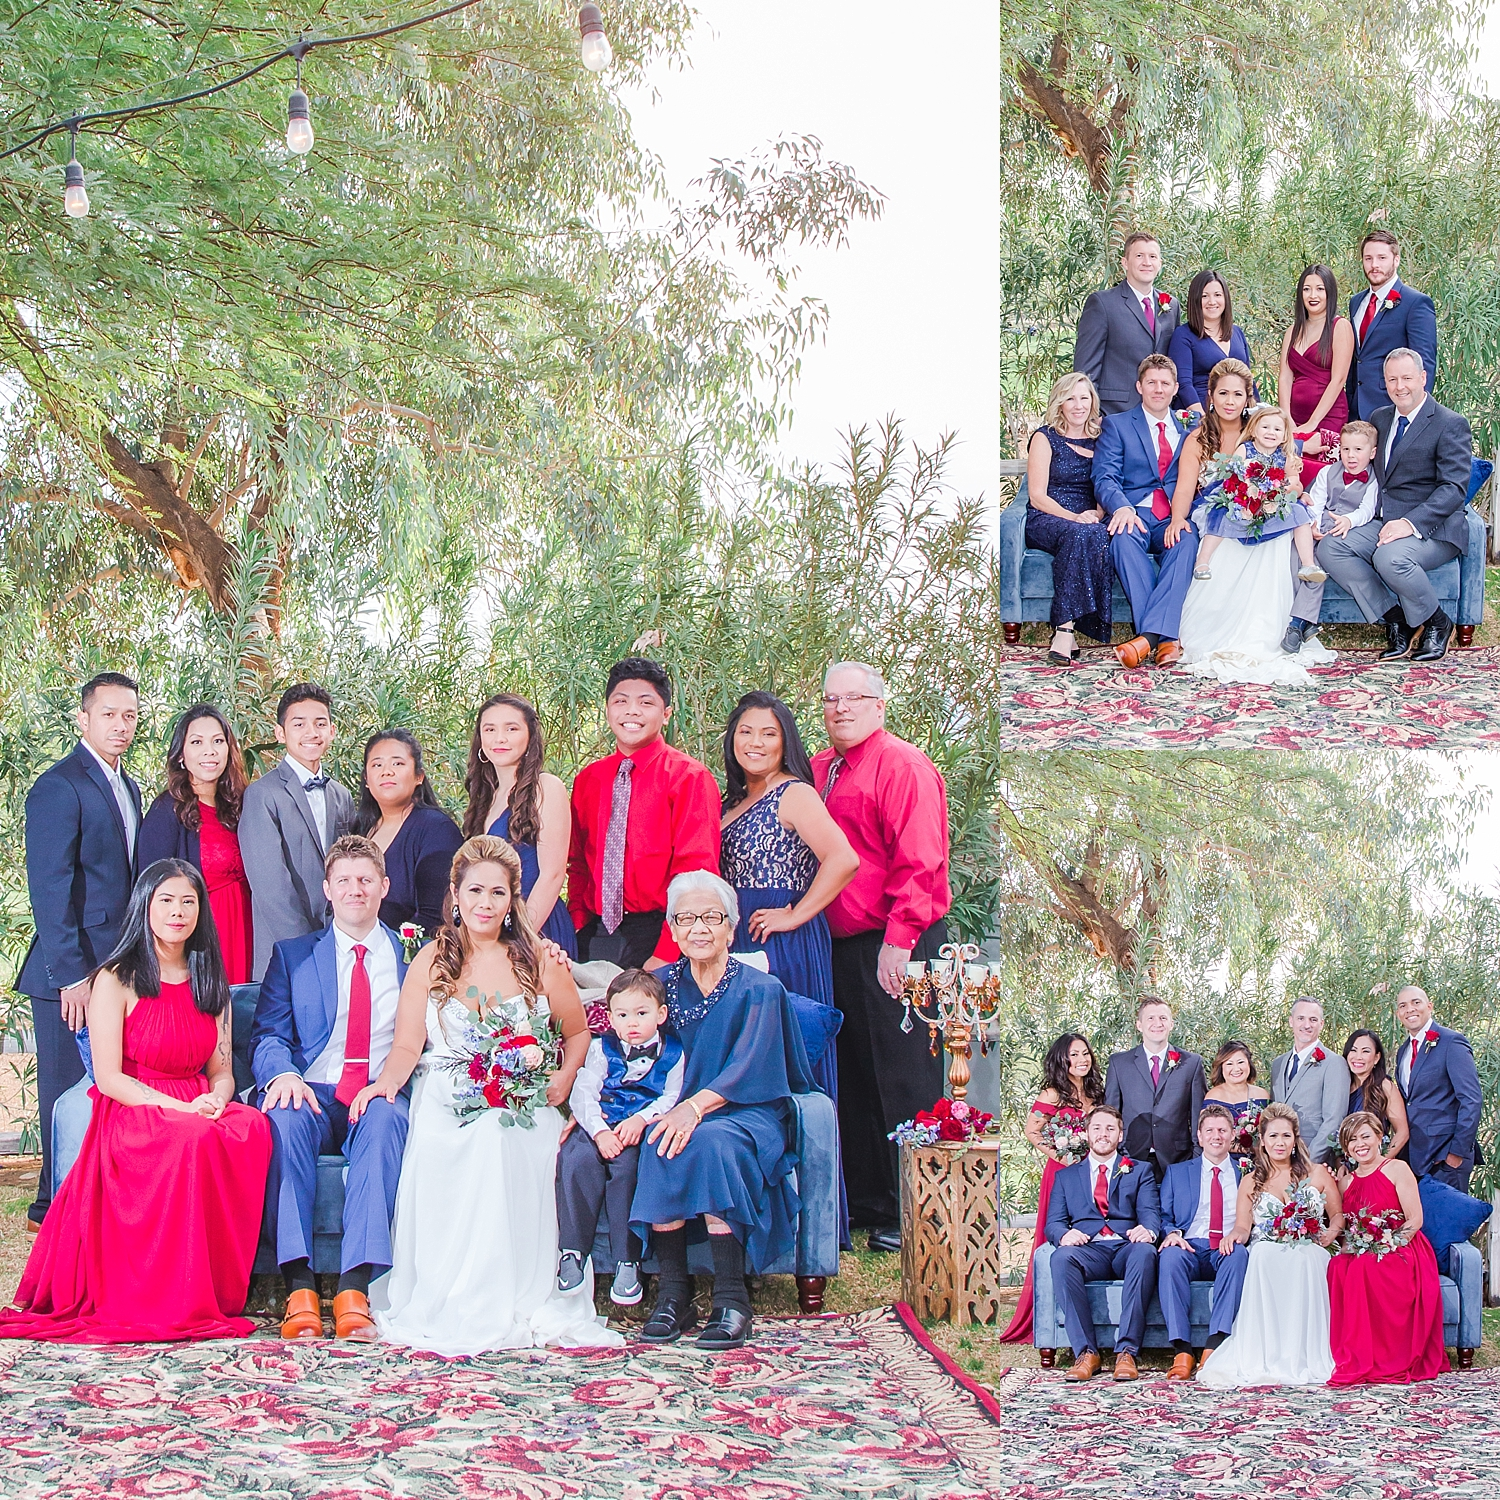 The lovely people pictured above are our family and friends. I really loved the fact that everyone dressed up and we were able to get photos that we otherwise may not have. Thank you family and friends!